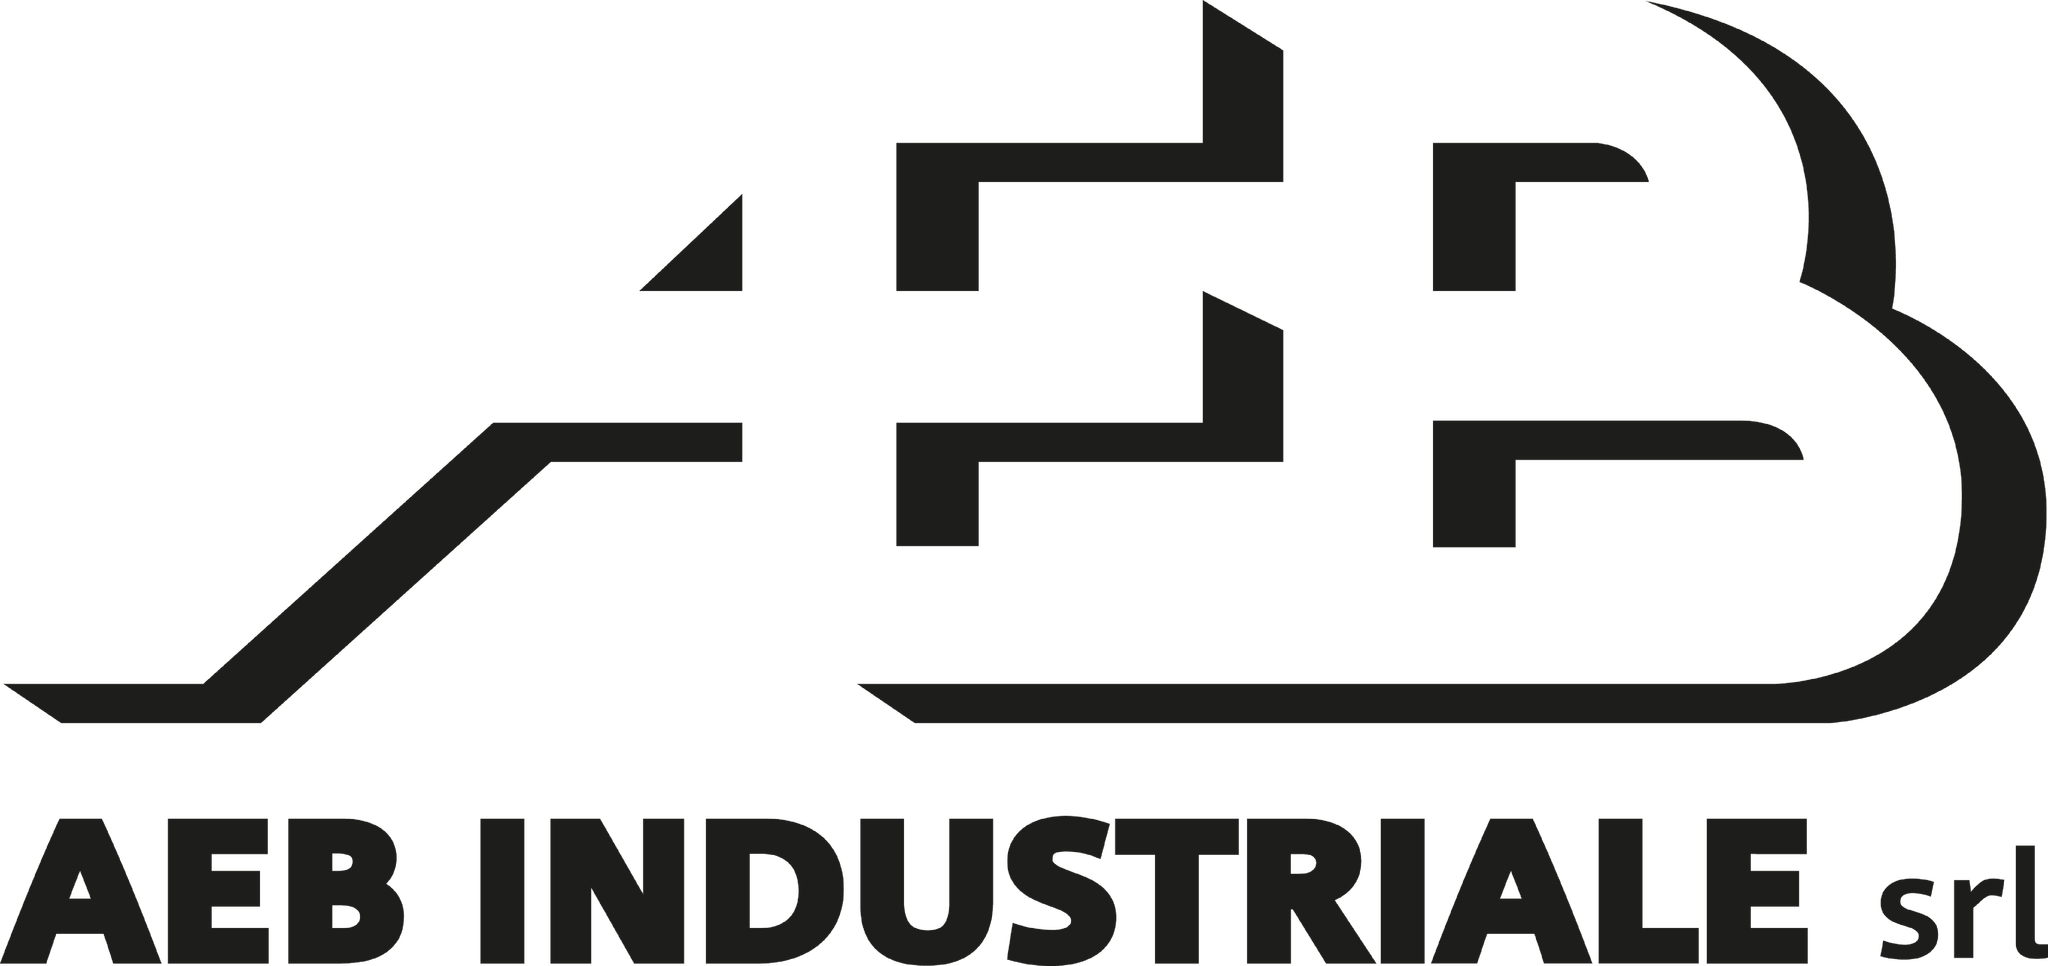 AEB Industriale S.r.I